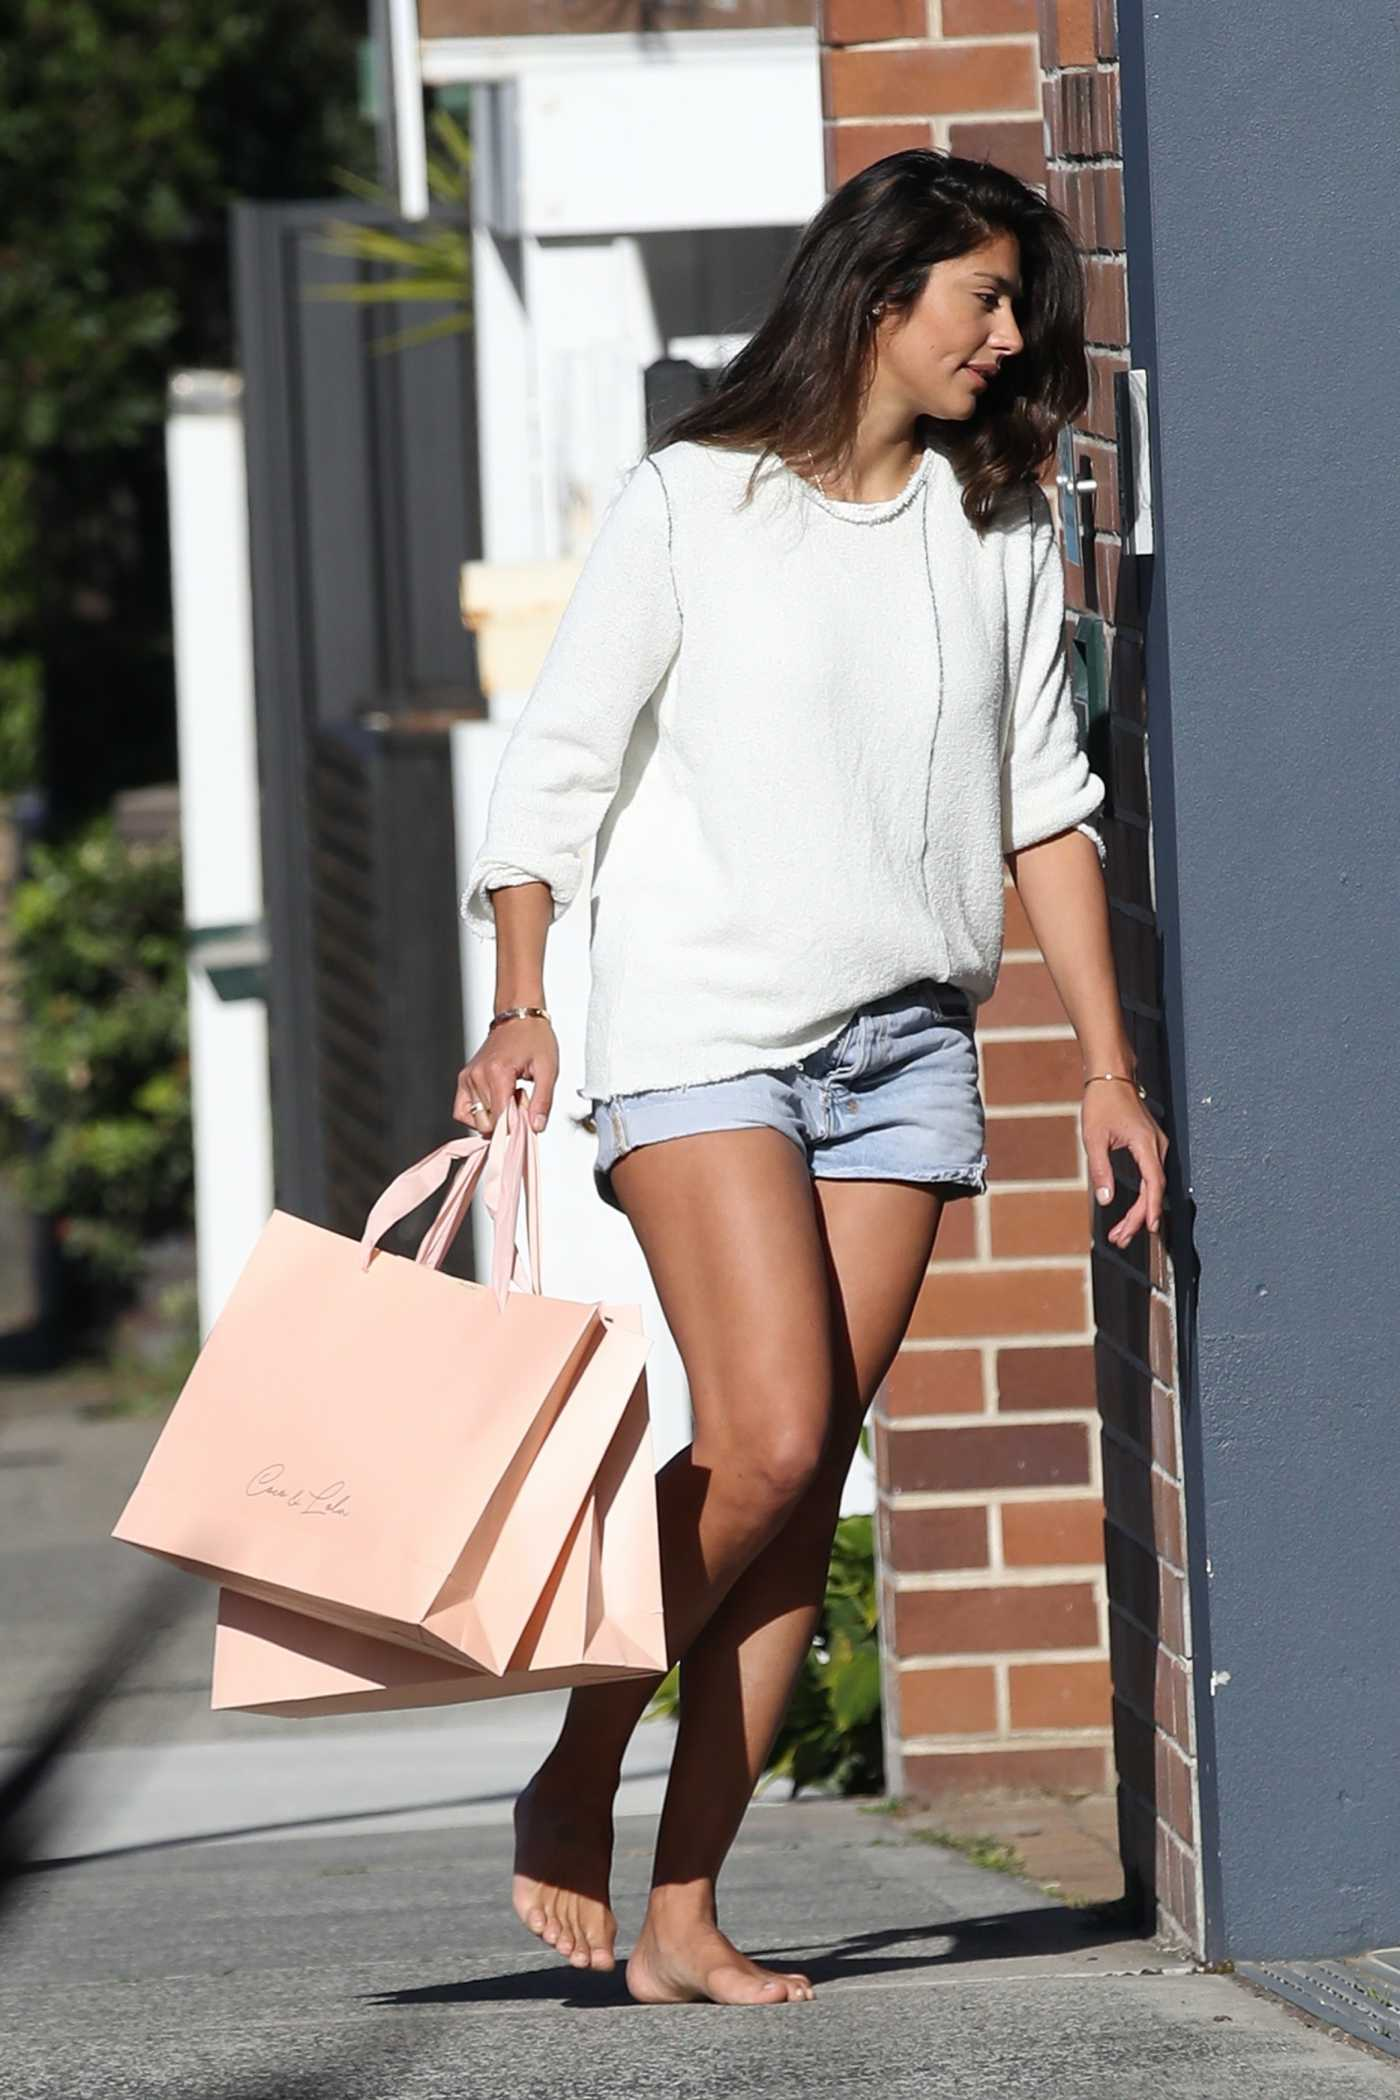 Pia Miller in a Blue Daisy Duke Shorts Was Seen Out in Sydney 07/31/2020